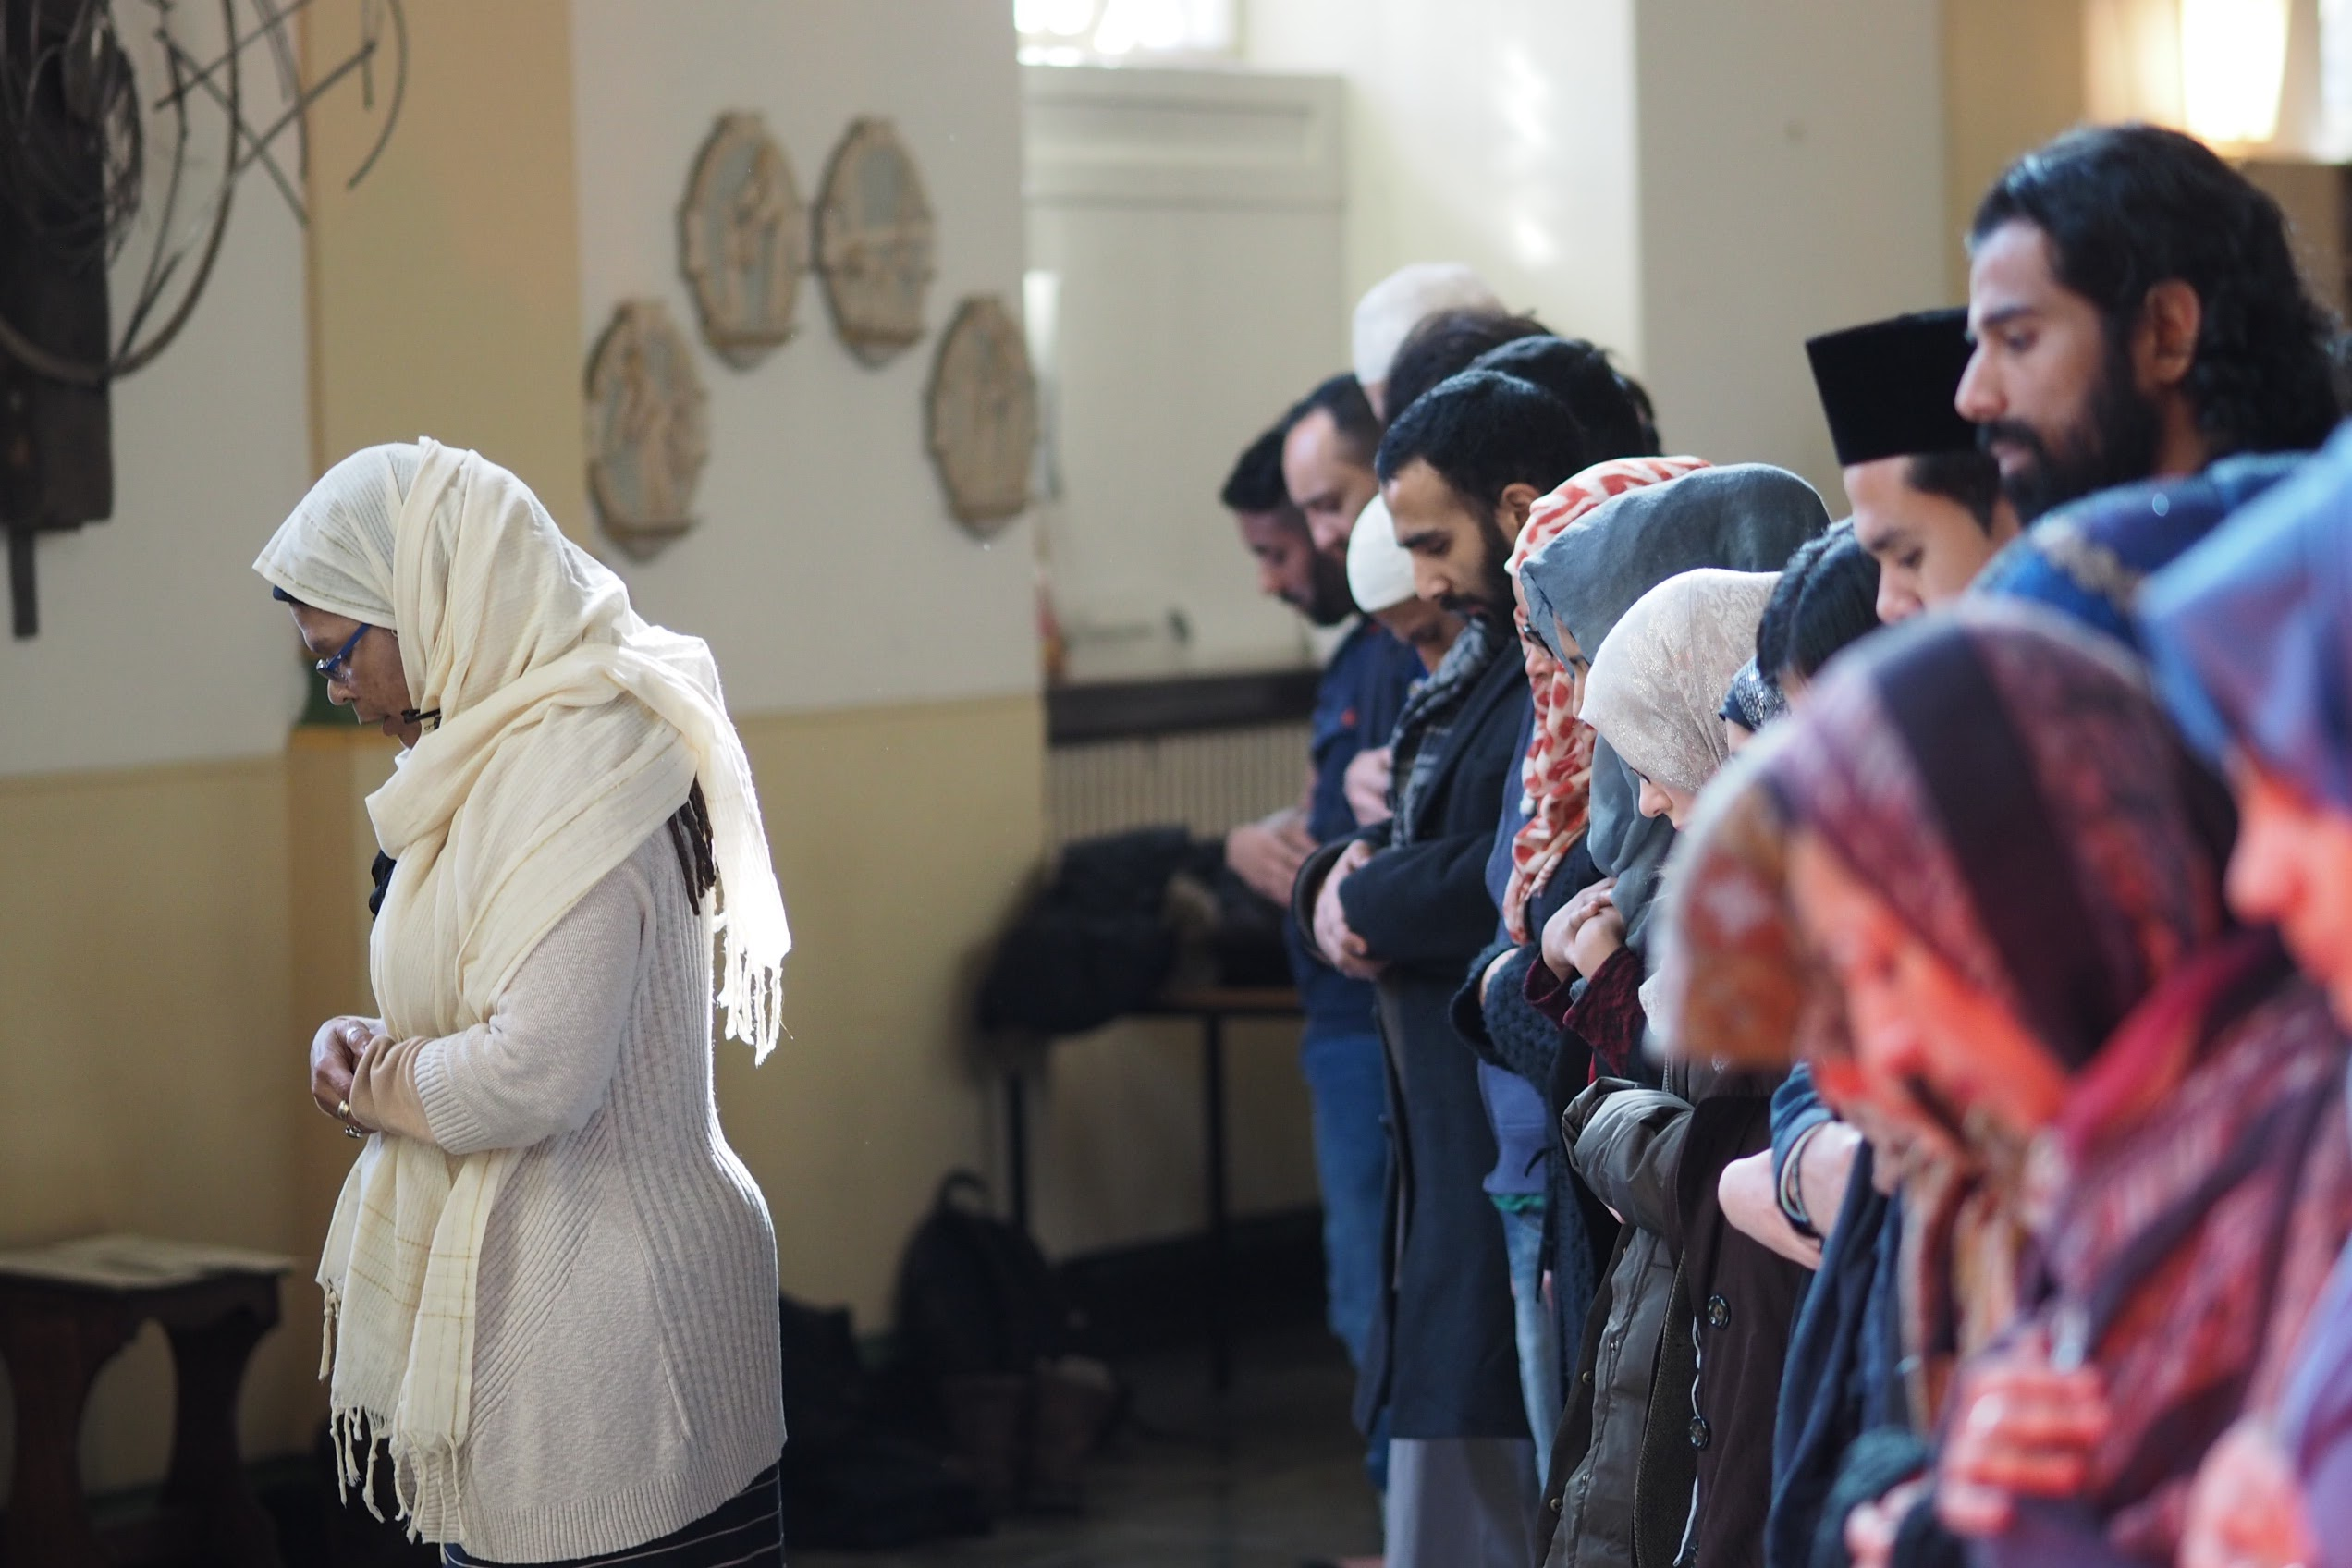 Pray at these Mosques Where Women Call the Adhan, Give Sermons and